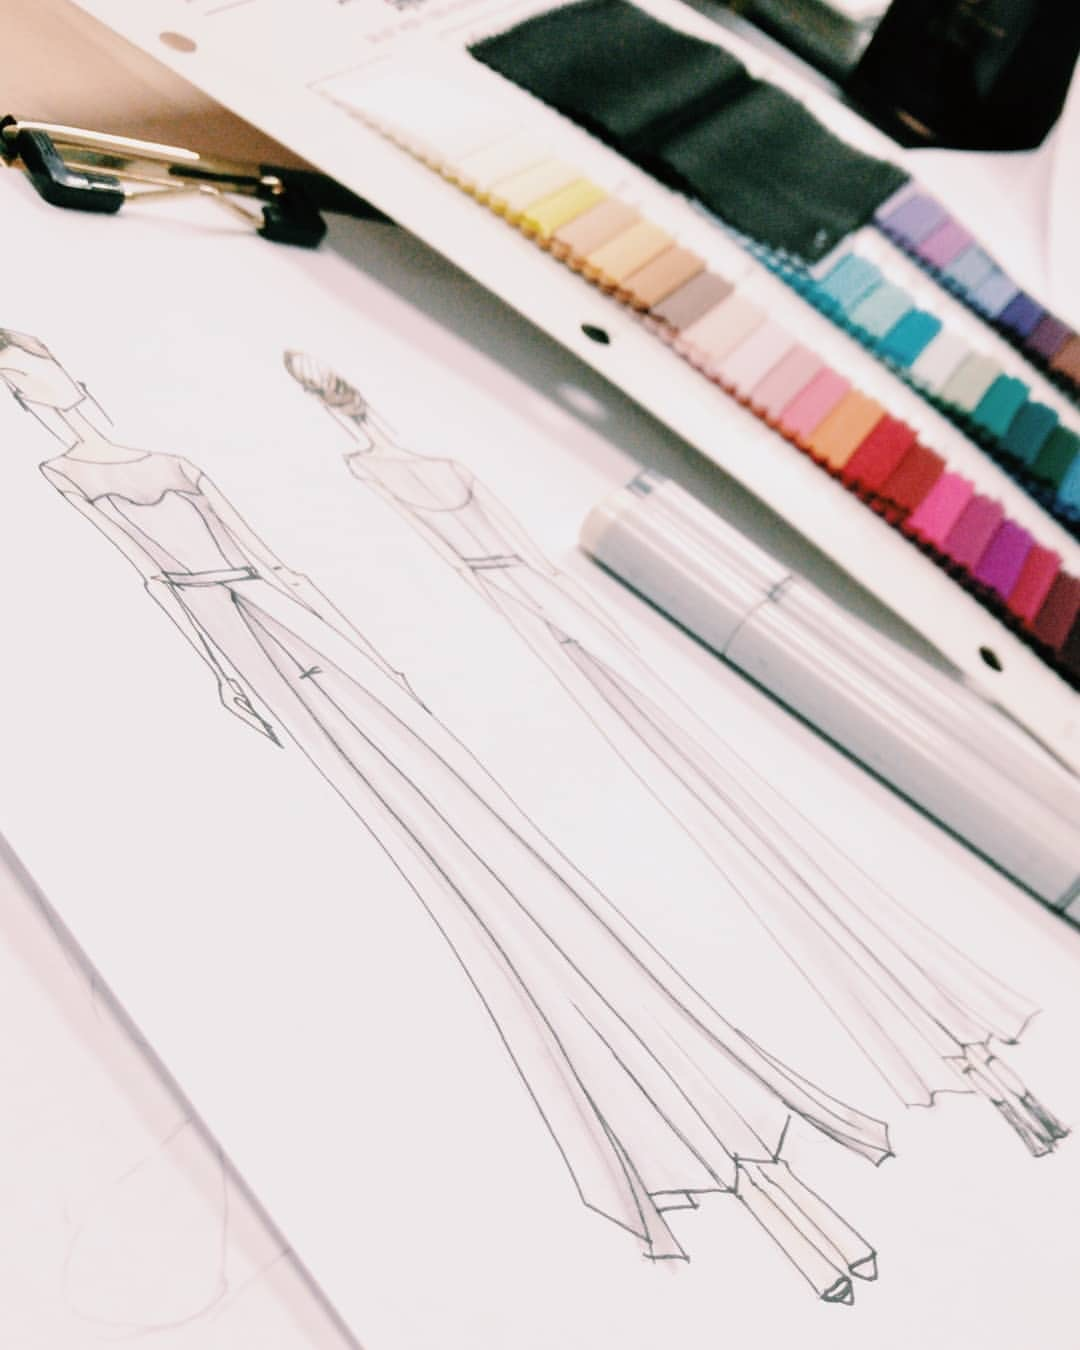 Clothing sketch and fabric swatches